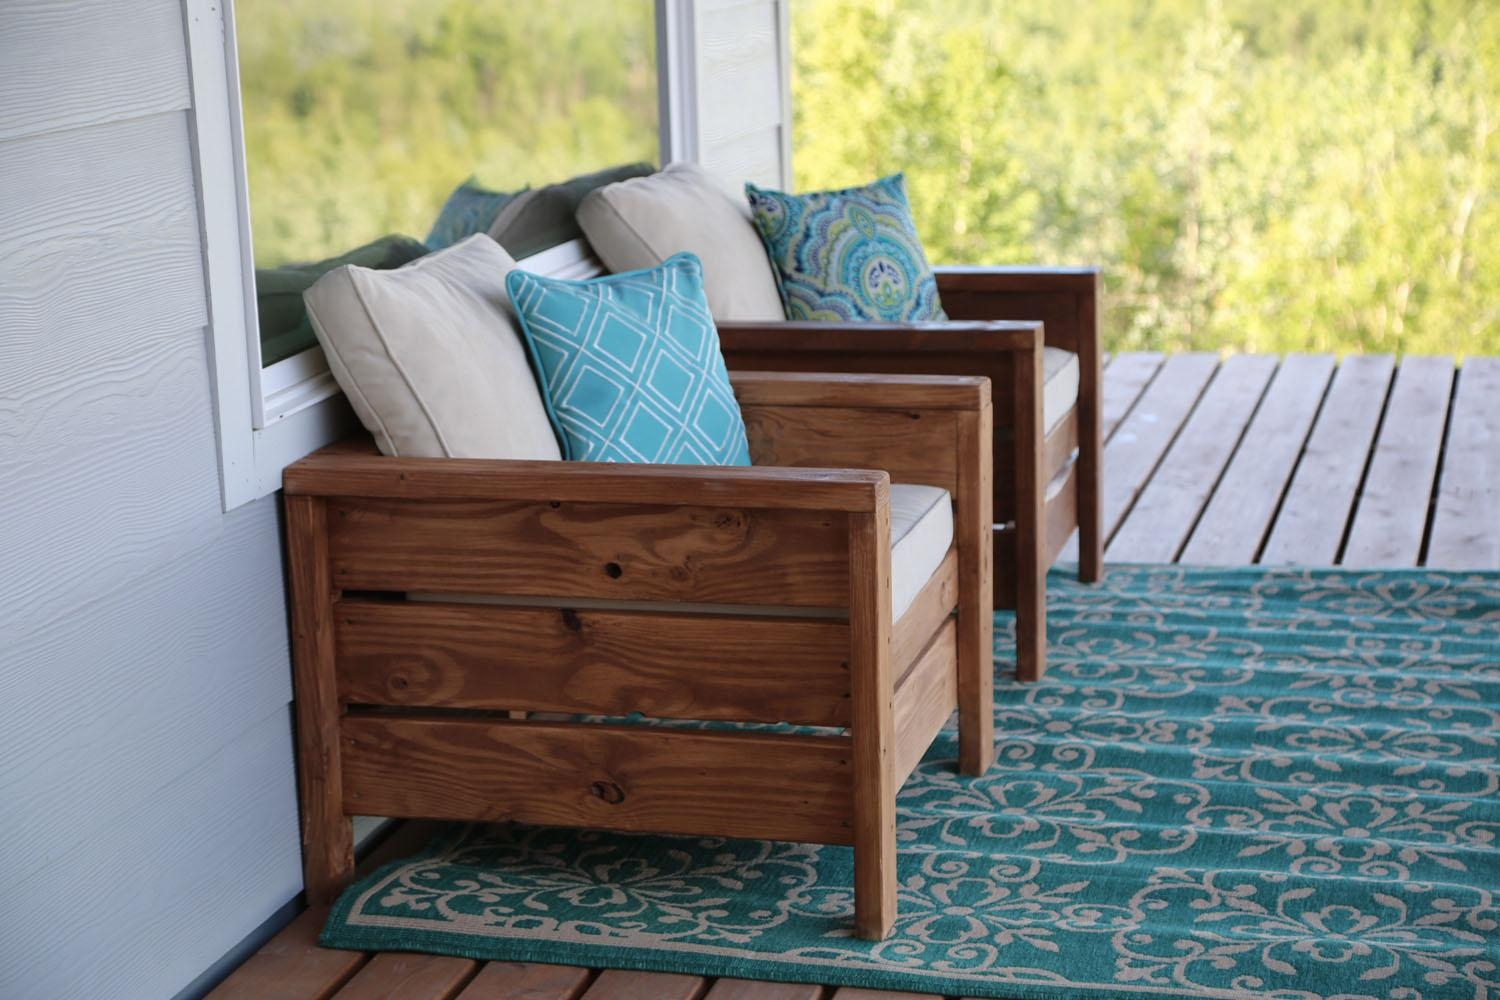 Ana White | Modern Outdoor Chair From 2X4S And 2X6S – Diy Projects Inside Ana White Outdoor Sofas (View 3 of 20)